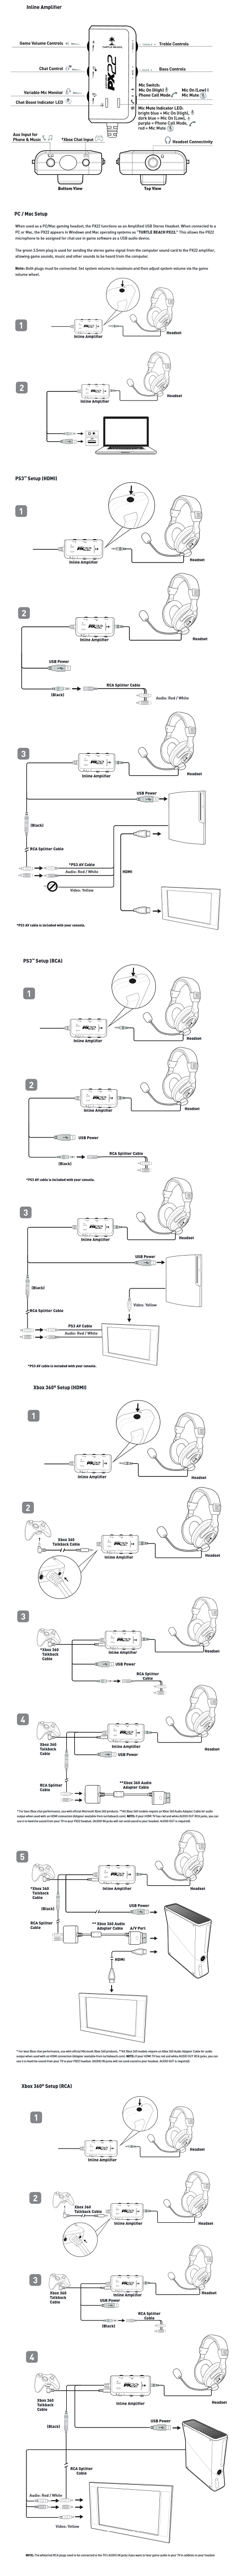 PX22_SETUP turtle beach px22 wiring diagram how to rewire turtle beach Ear Force PX21 at reclaimingppi.co